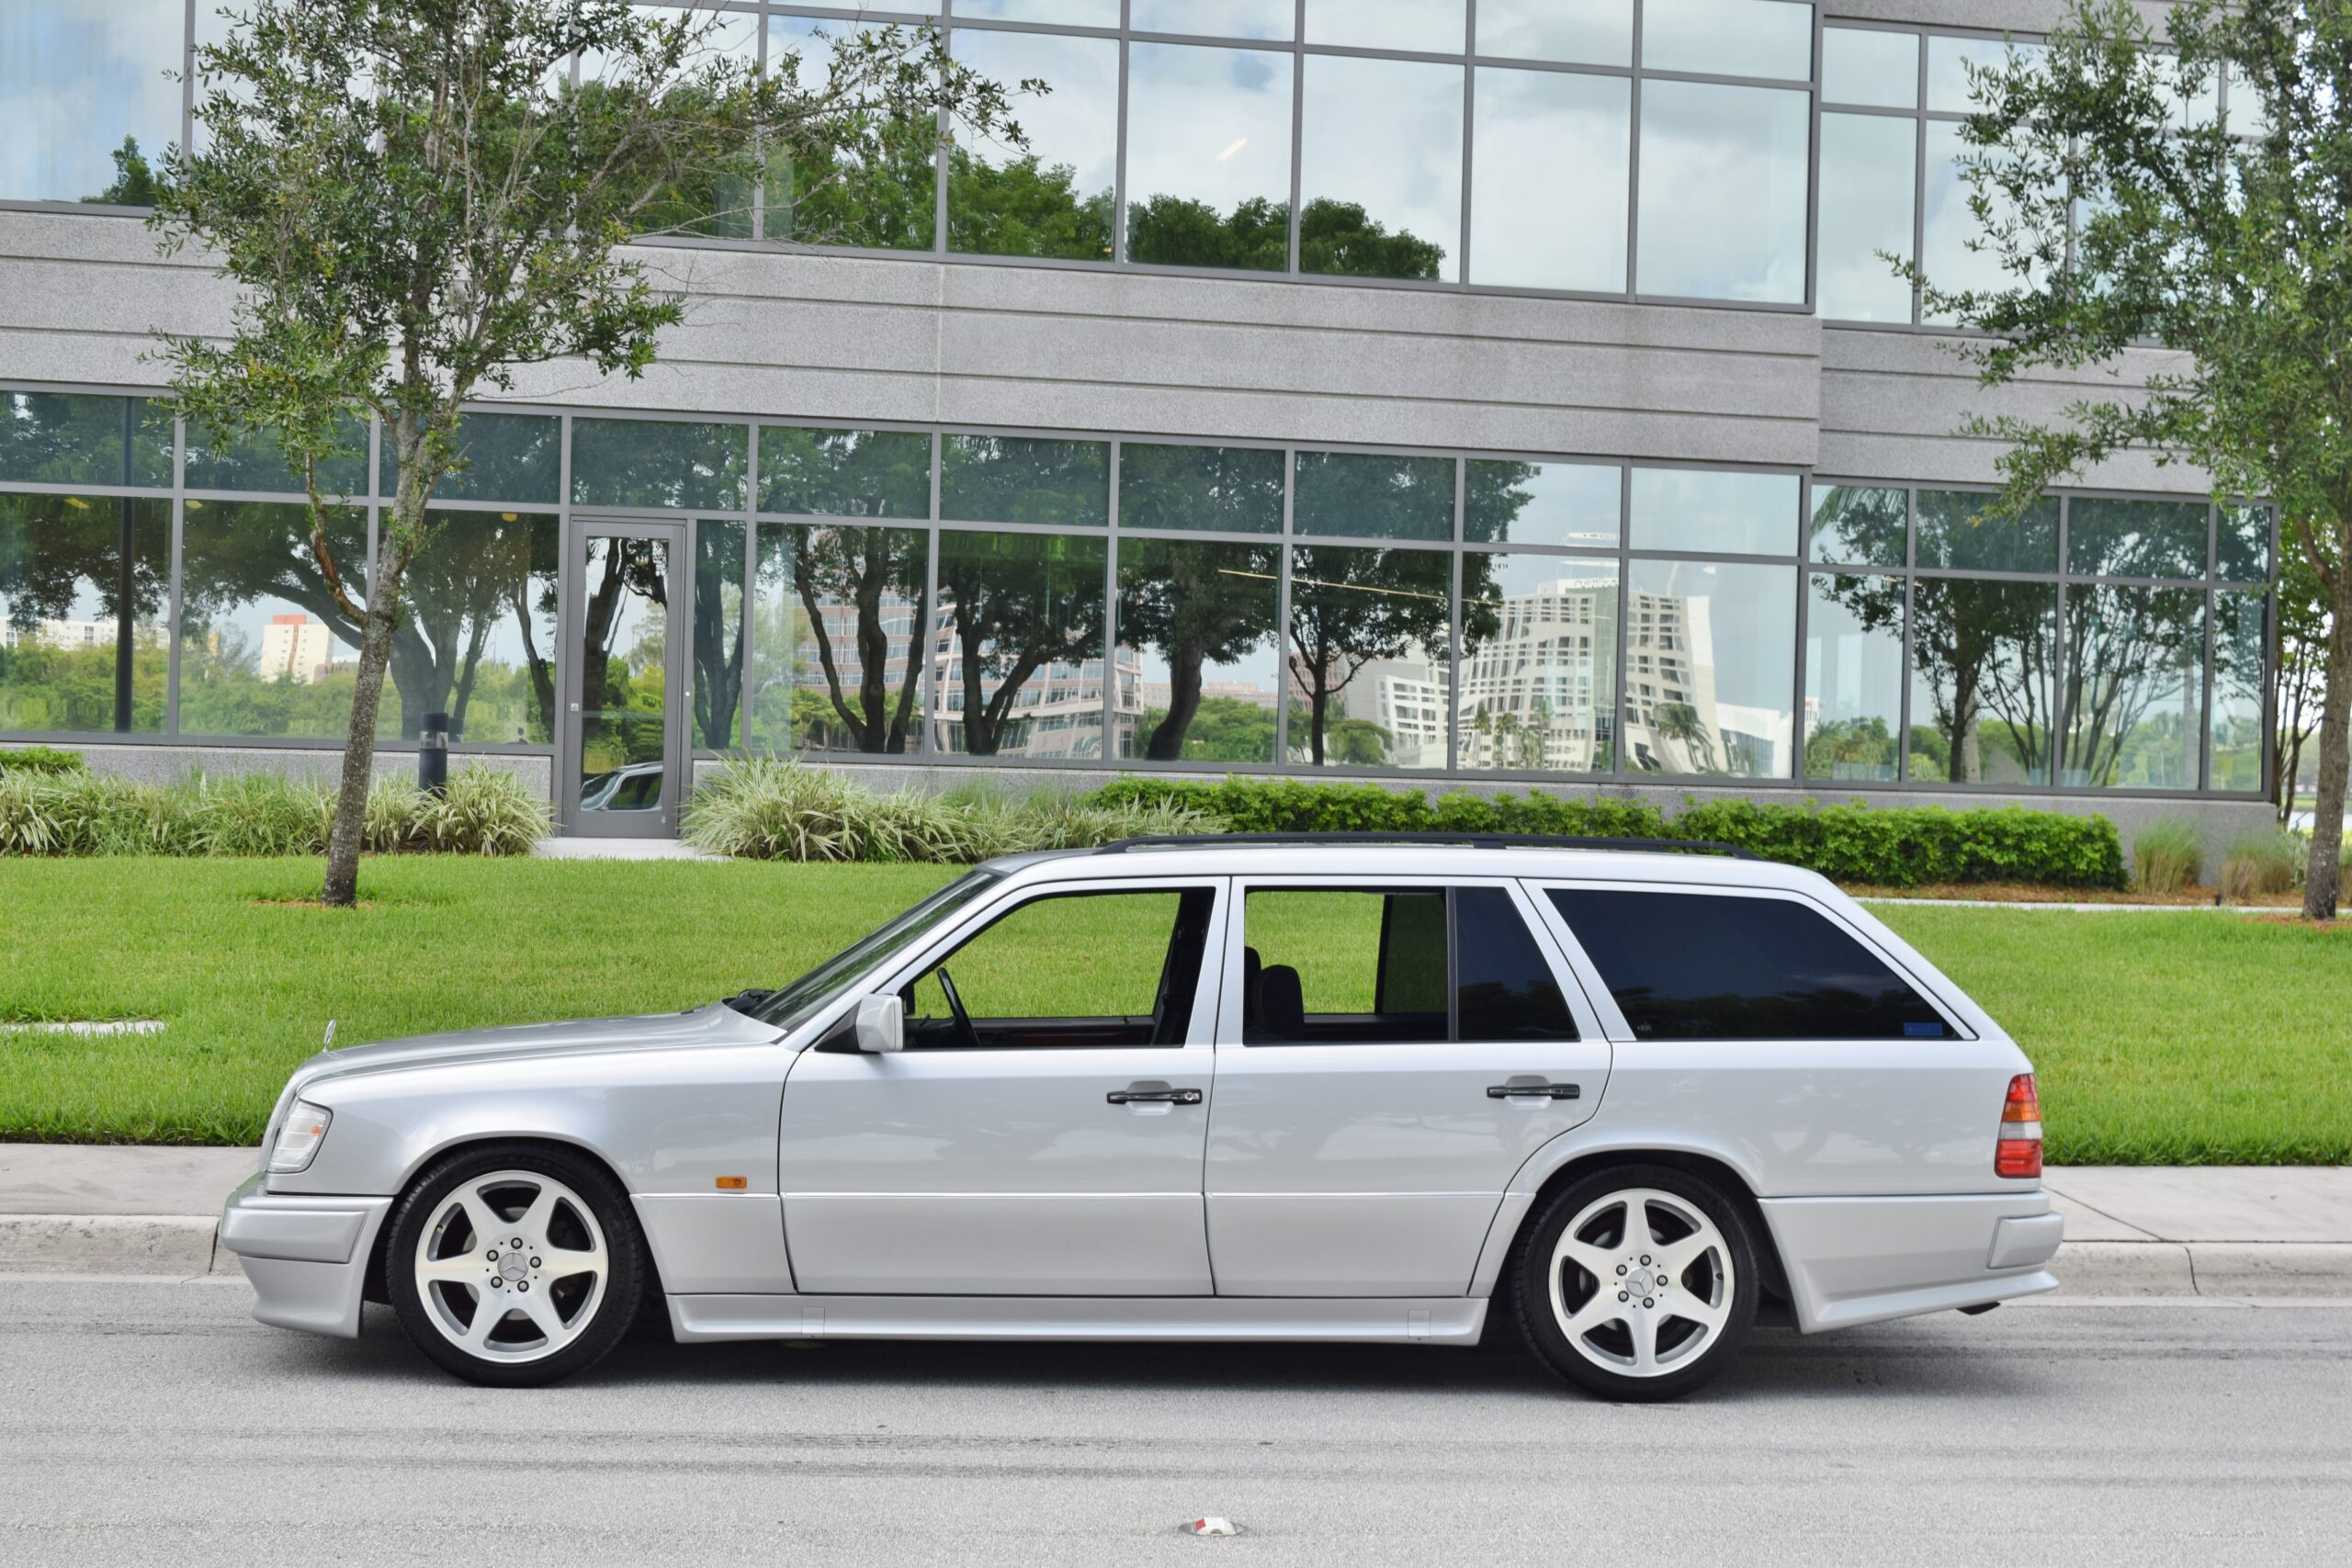 1994 Mercedes-Benz E-Class S124 Wagon RHD Euro – AMG Aero – EVO Wheels – Adjustable Koni's – ONLY 61K Miles – LIKE NEW